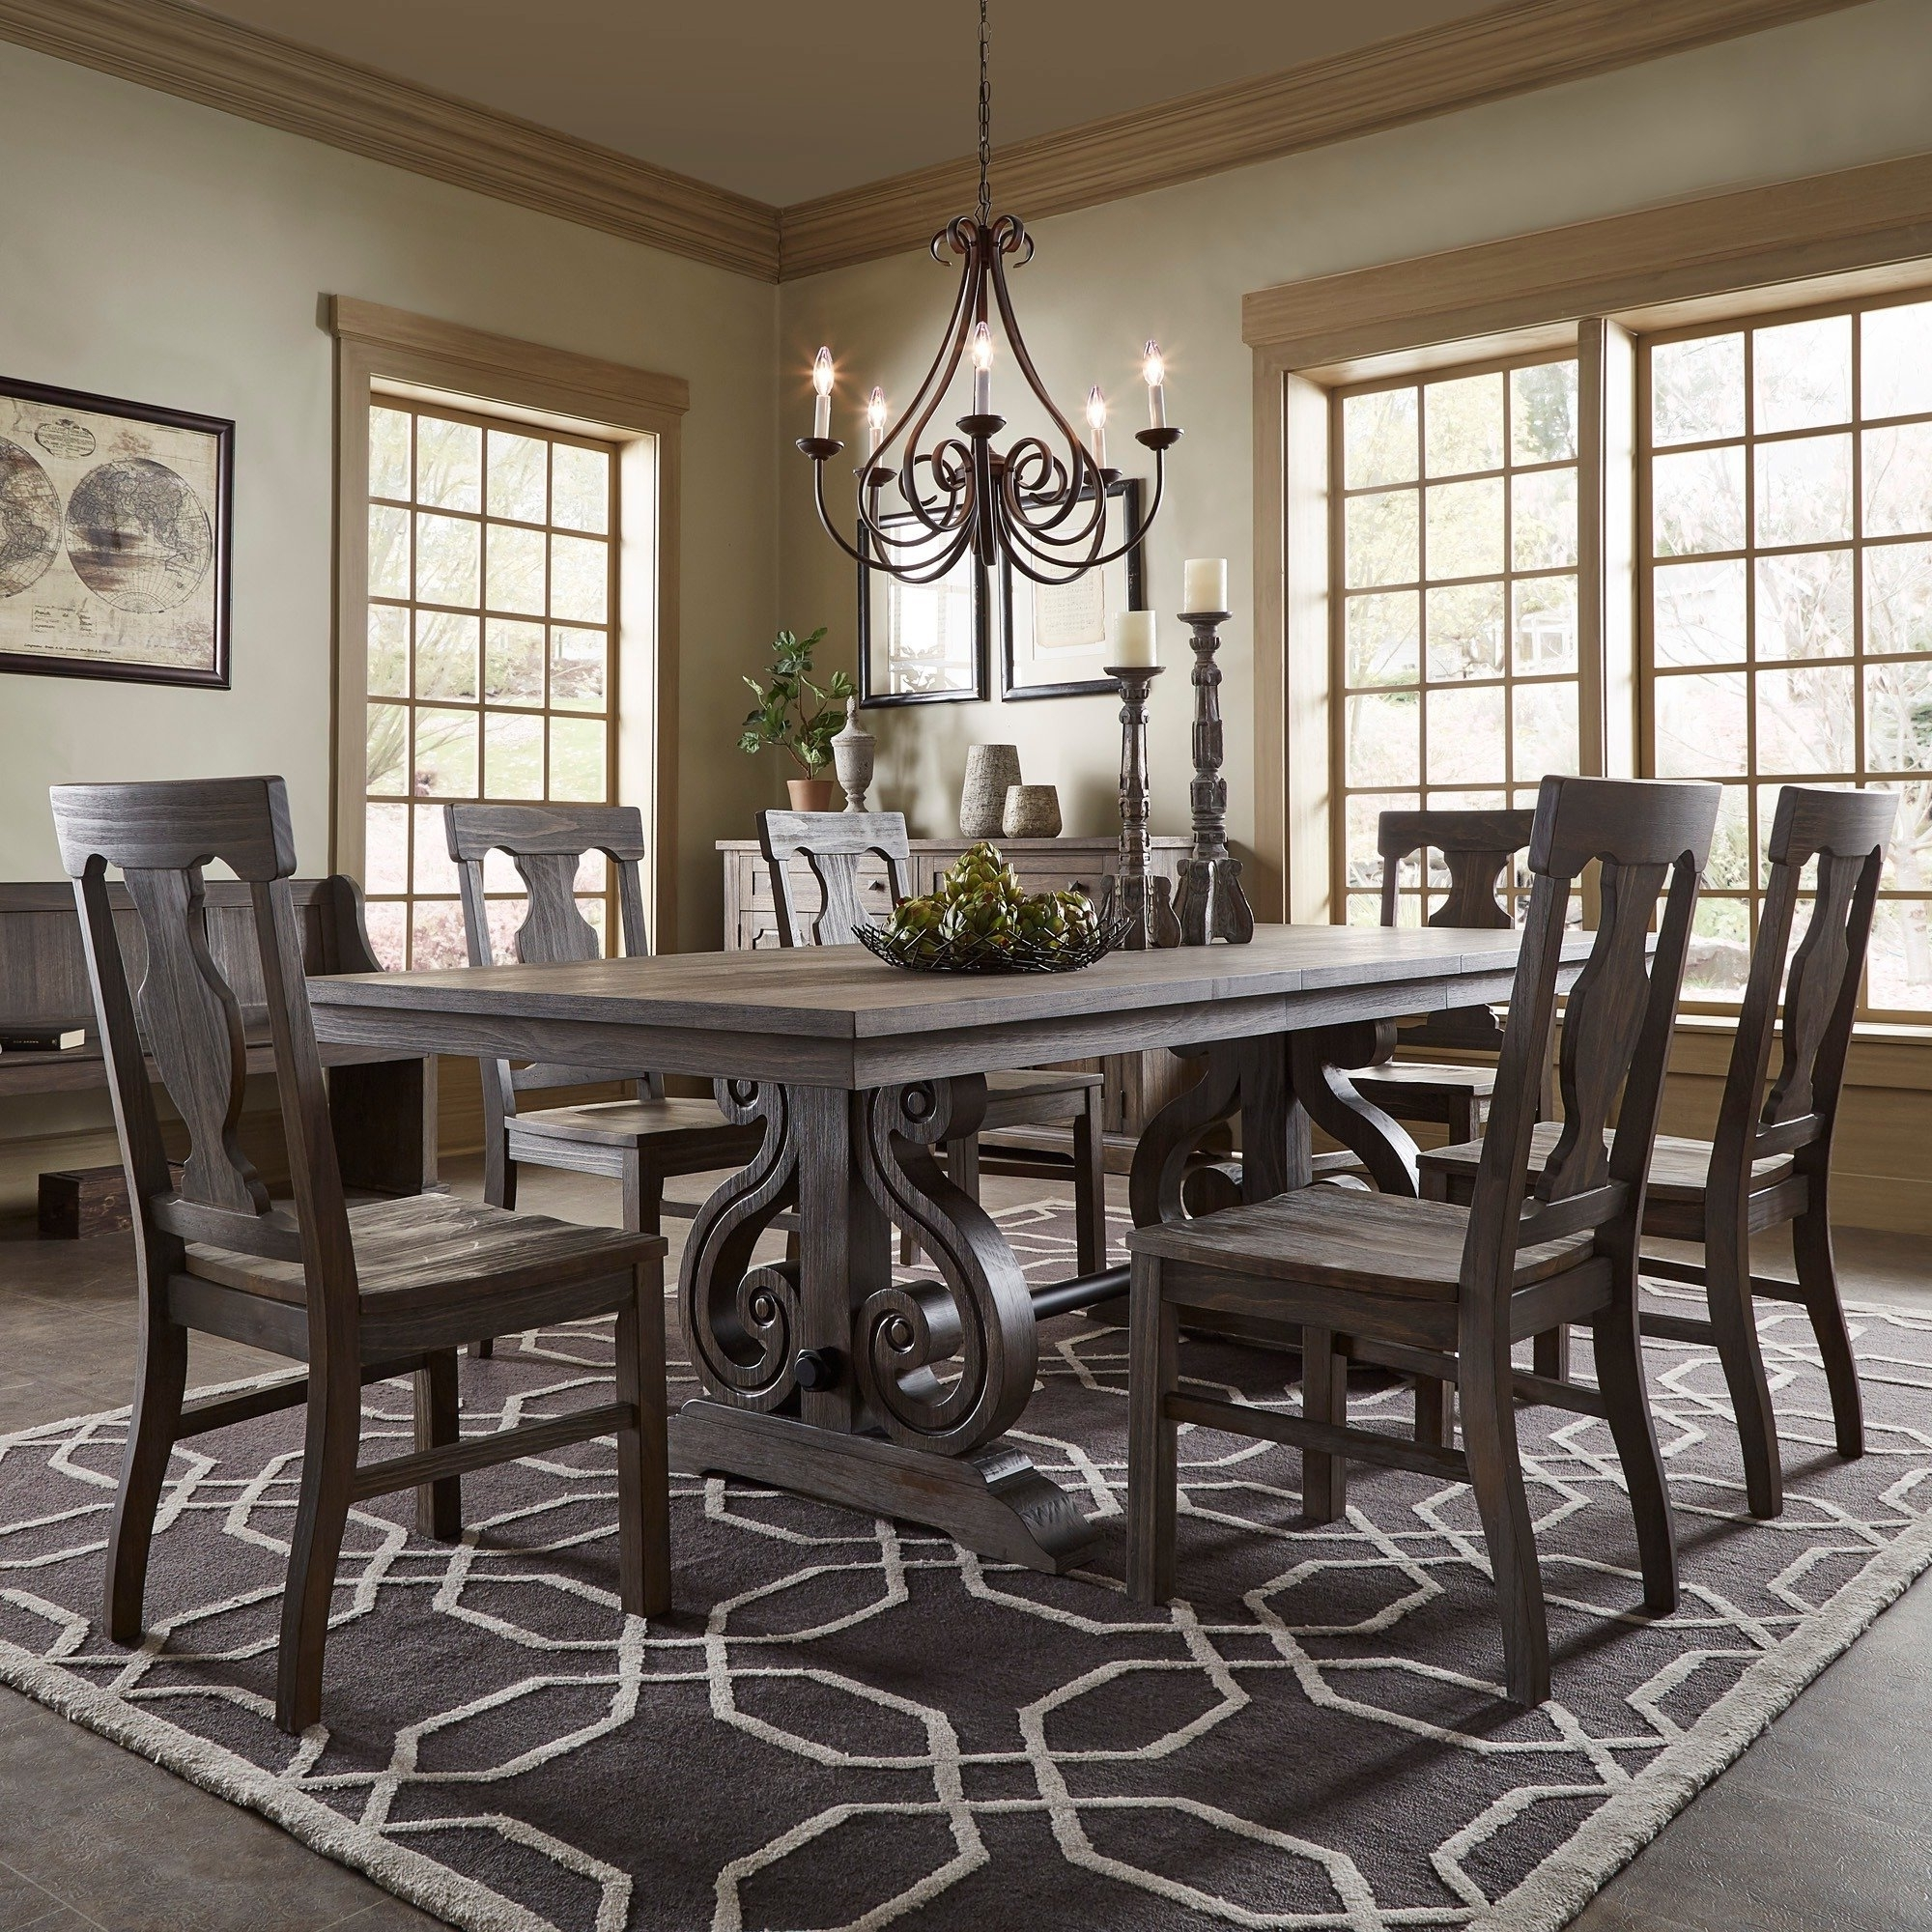 Ebay With Extending Dining Table Sets (View 5 of 25)